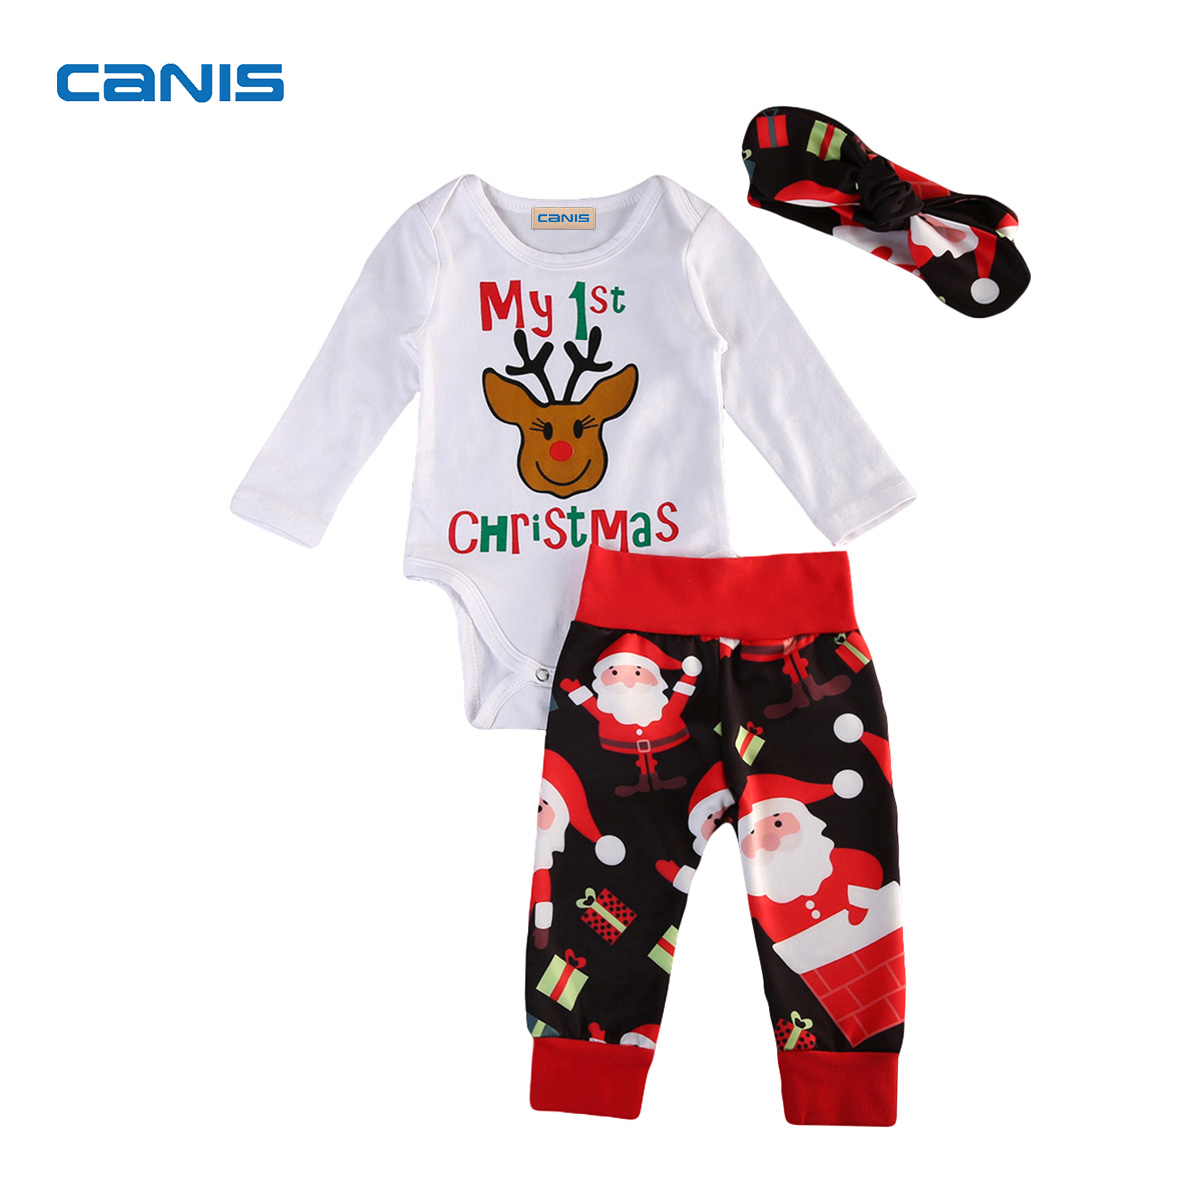 Xmas Newborn Infant Baby Girls Boys Clothes Deer Romper Tops Santa Claus Long Pants Toddler Baby First Christmas Outfits Set 4pcs set baby girls clothing newborn baby clothes christmas infant jumpsuit clothes xmas bebe suits toddler romper tutu dresses